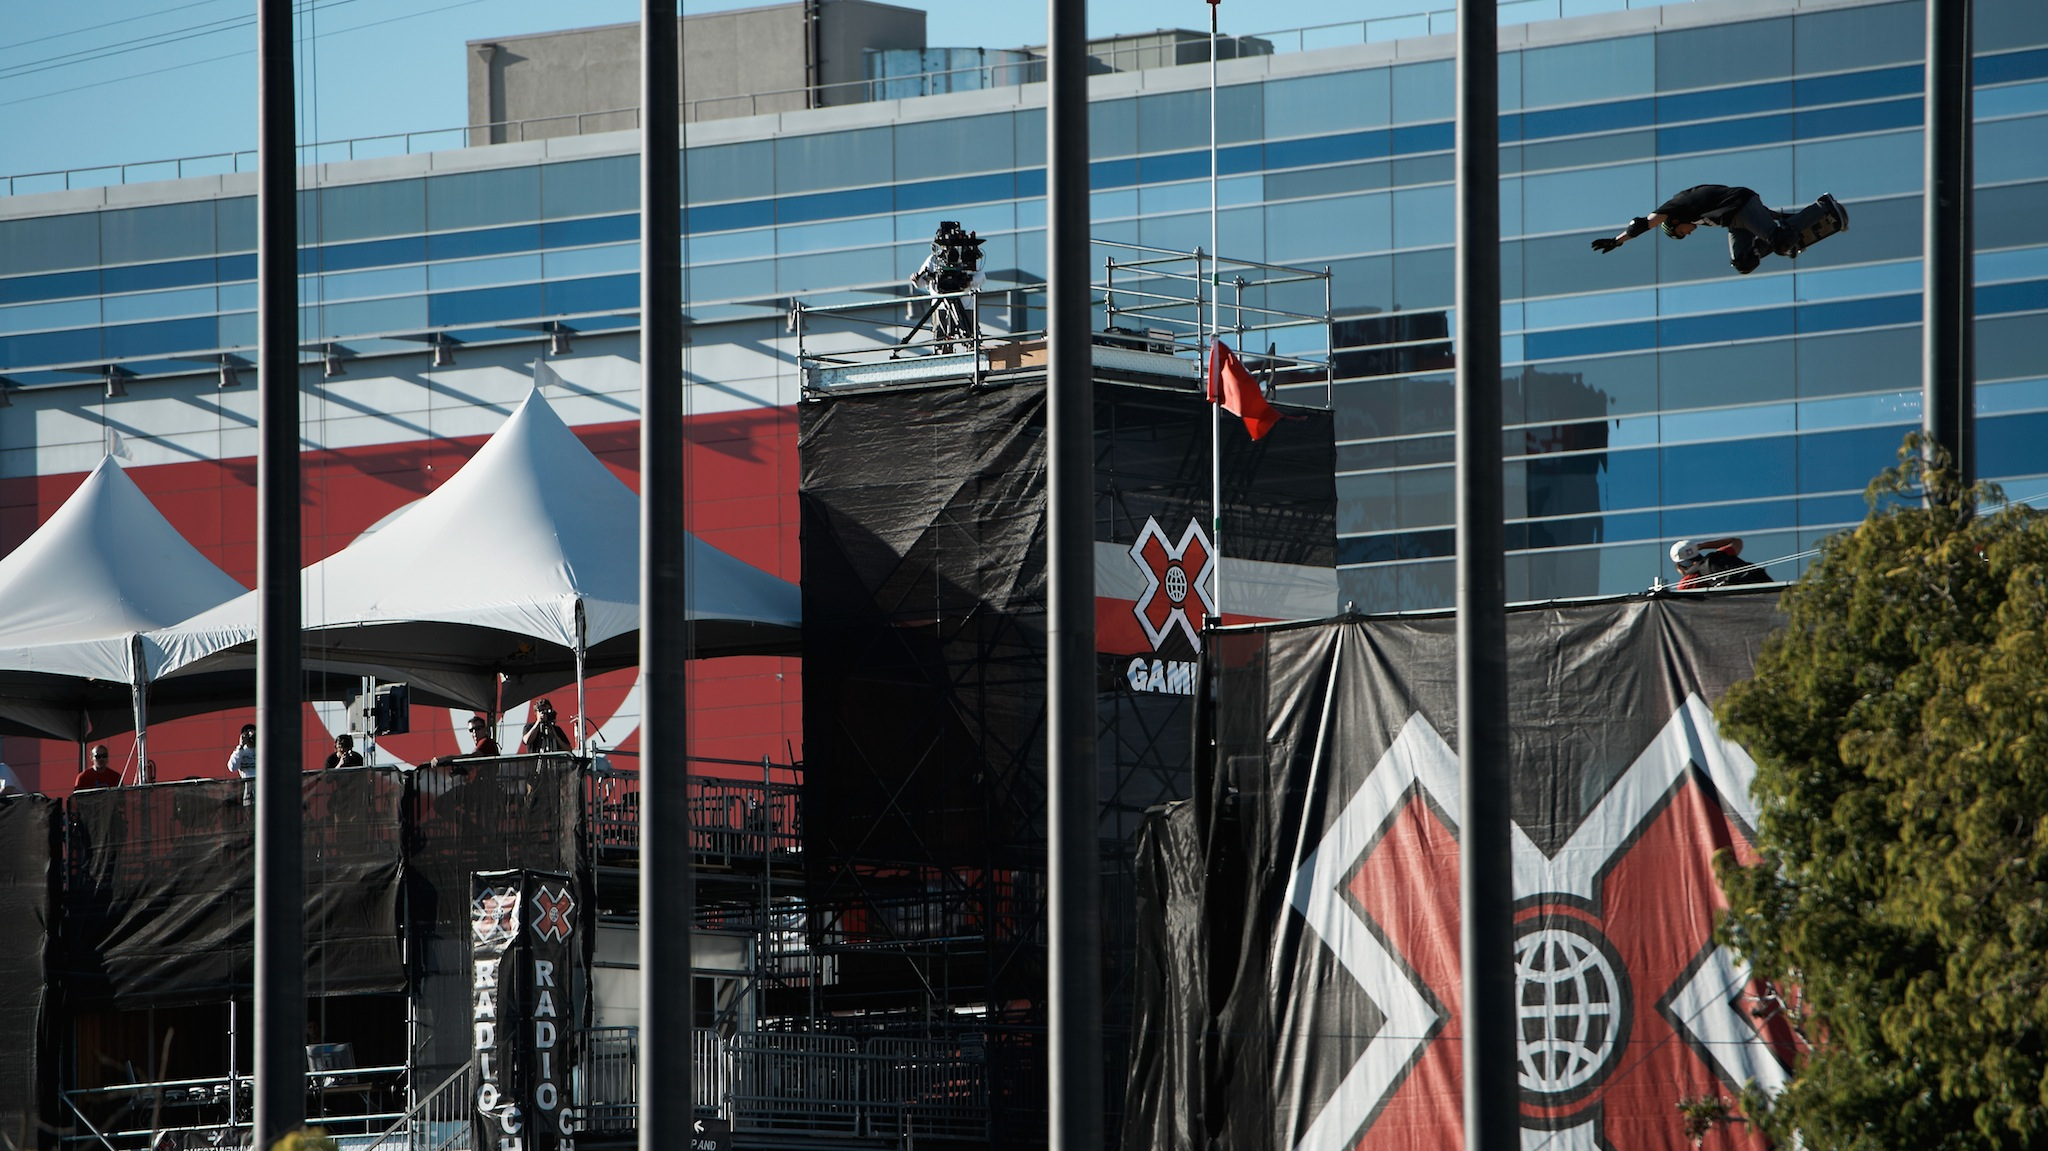 X Games Los Angeles, 2012